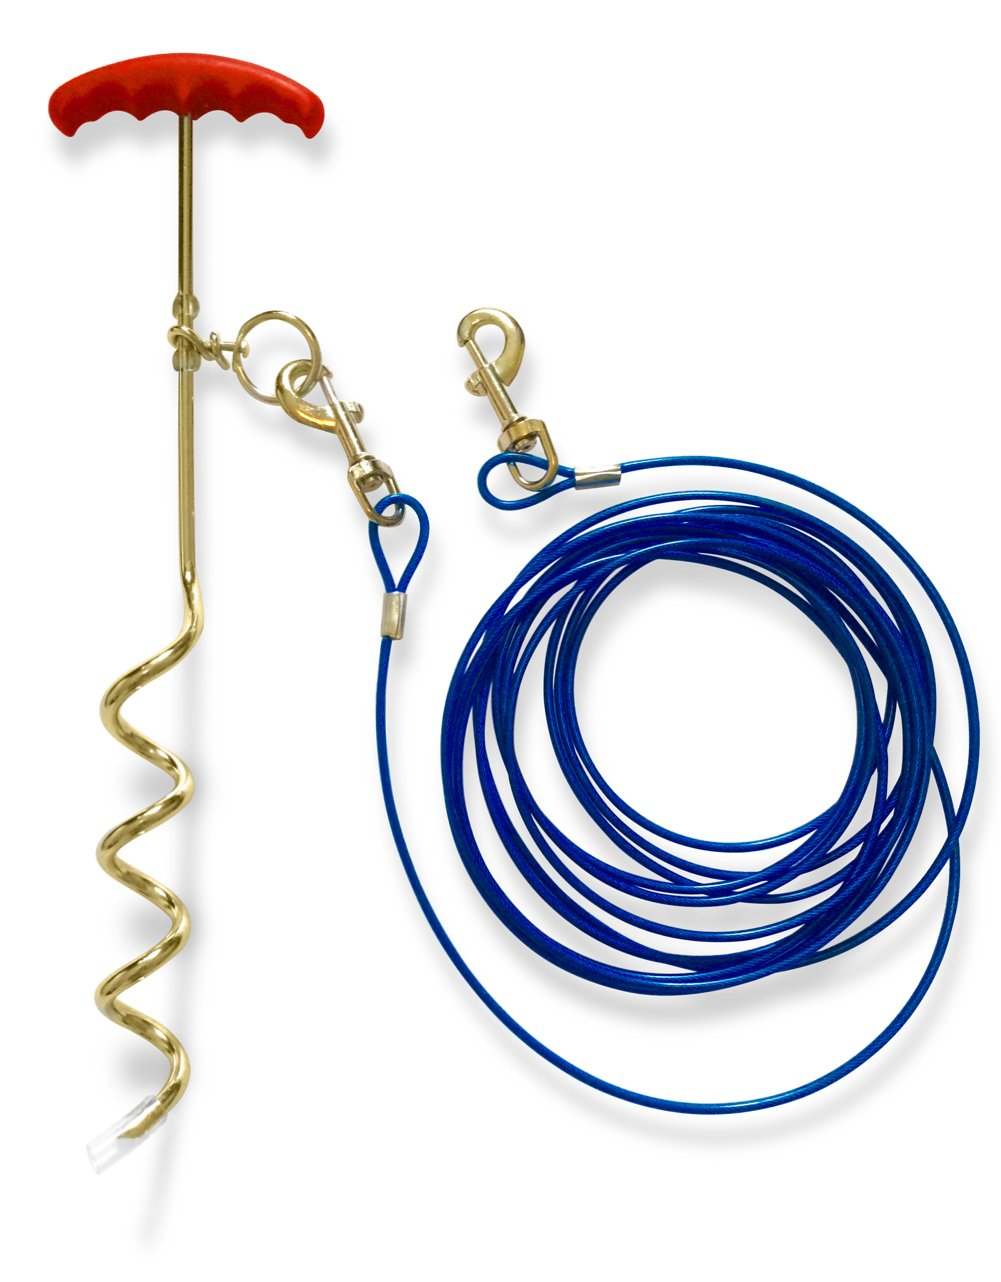 Dog Stake 16 Inches and Tie Out Cable 20 Feet Long - Complete Leash System for Outdoors, Yard and Camping - Small to Medium Dogs Up To 60 lbs